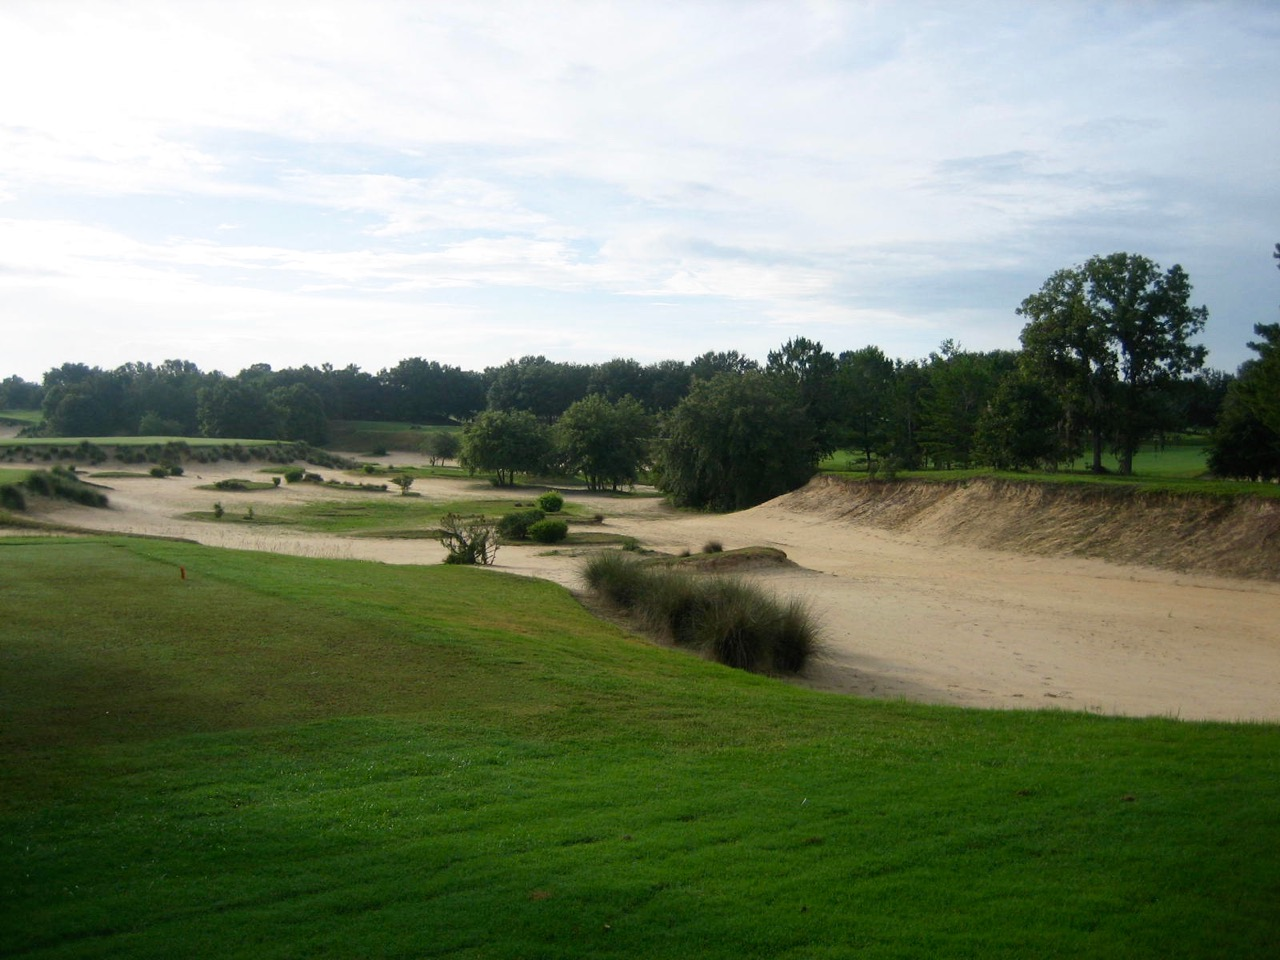 The sand cavern to the right of the 4th hole was made by simply digging into the forested soil that existed naturally on site.